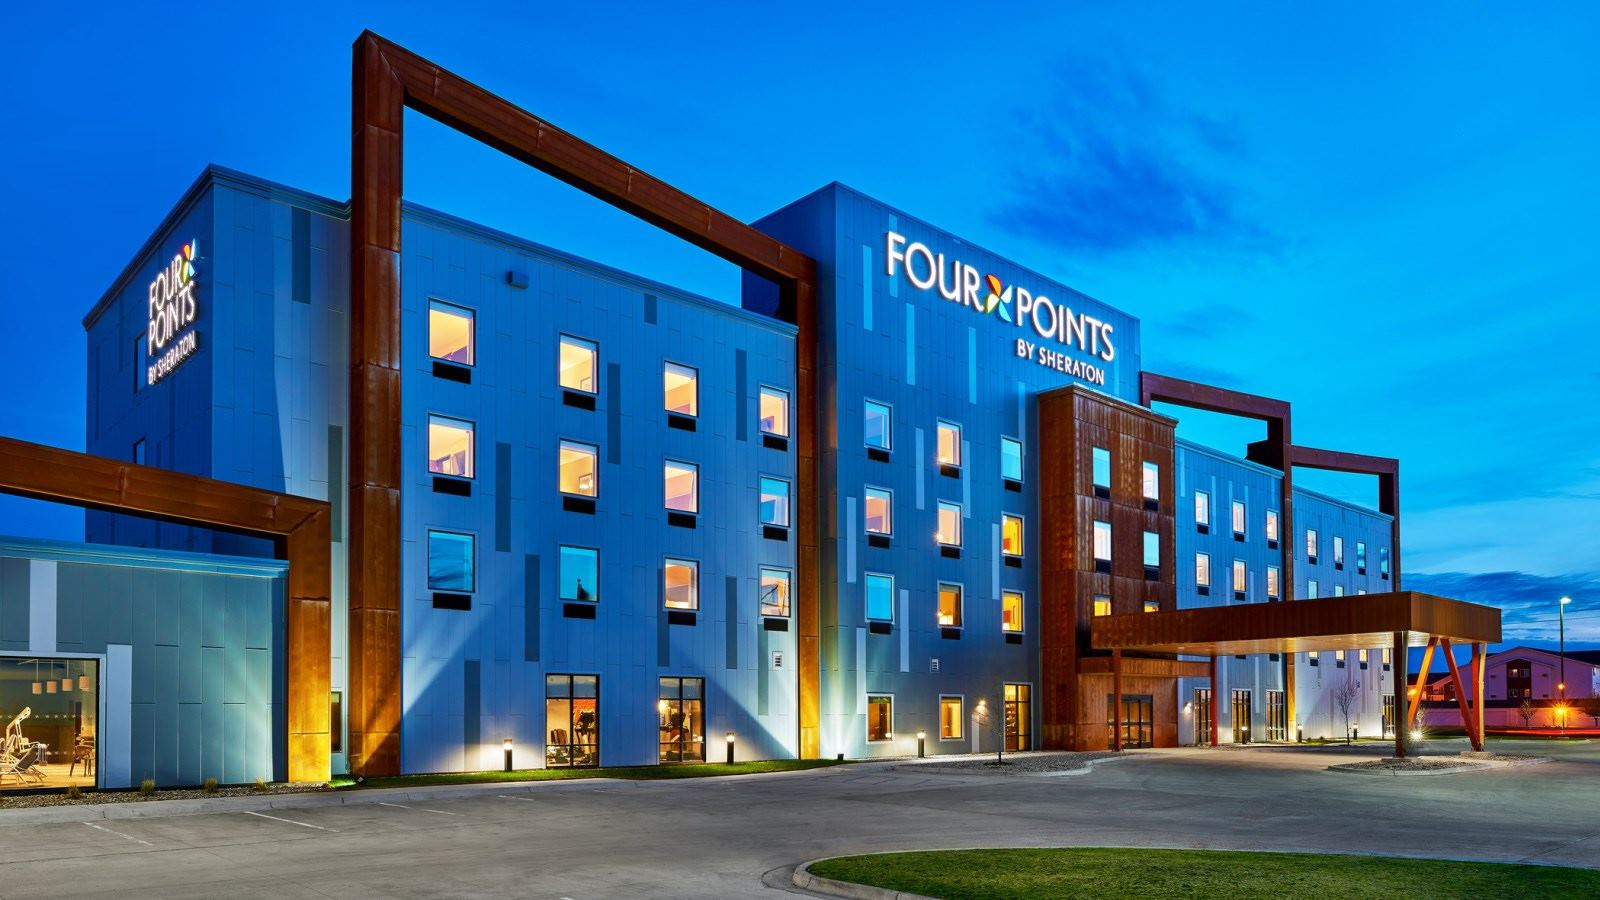 Four Points by Sheraton - 1